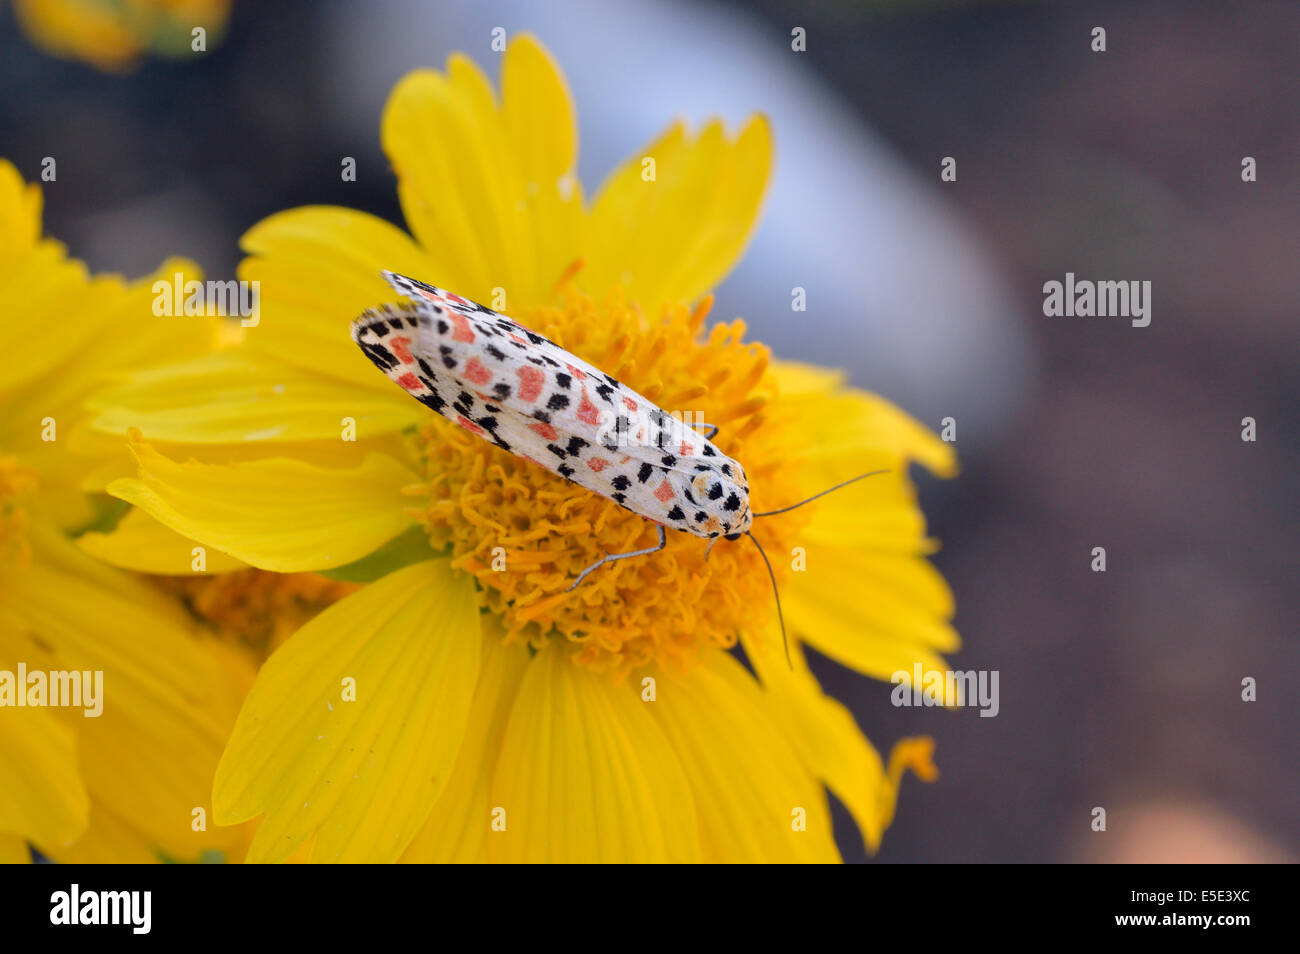 Utetheisa pulchella, Crimson Speckled Footman, Namibia Stock Photo